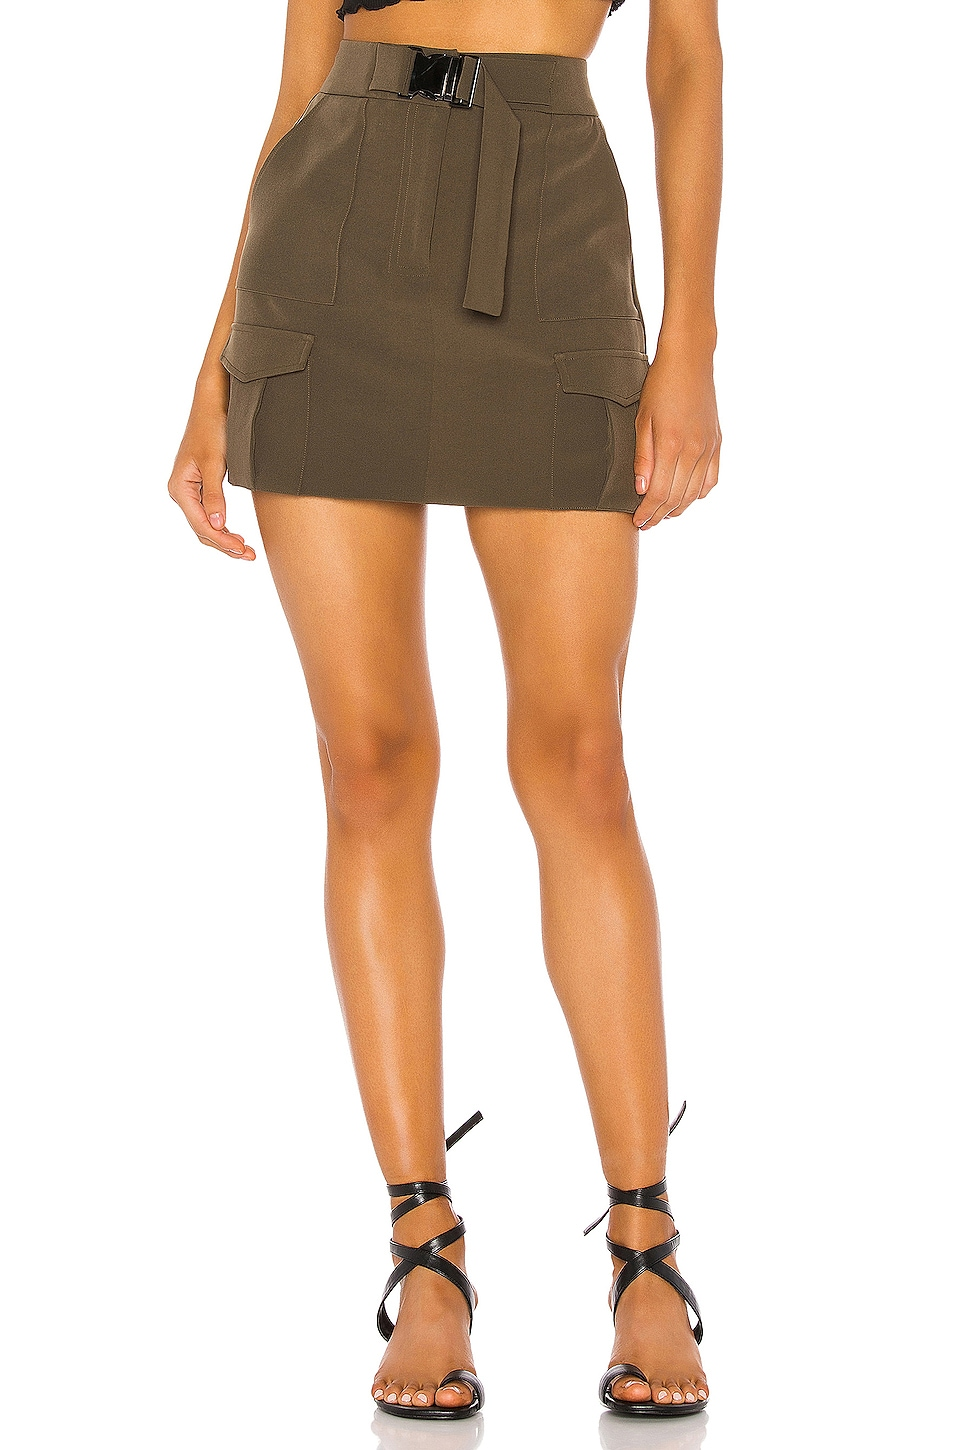 Tularosa Kym Skirt in Olive